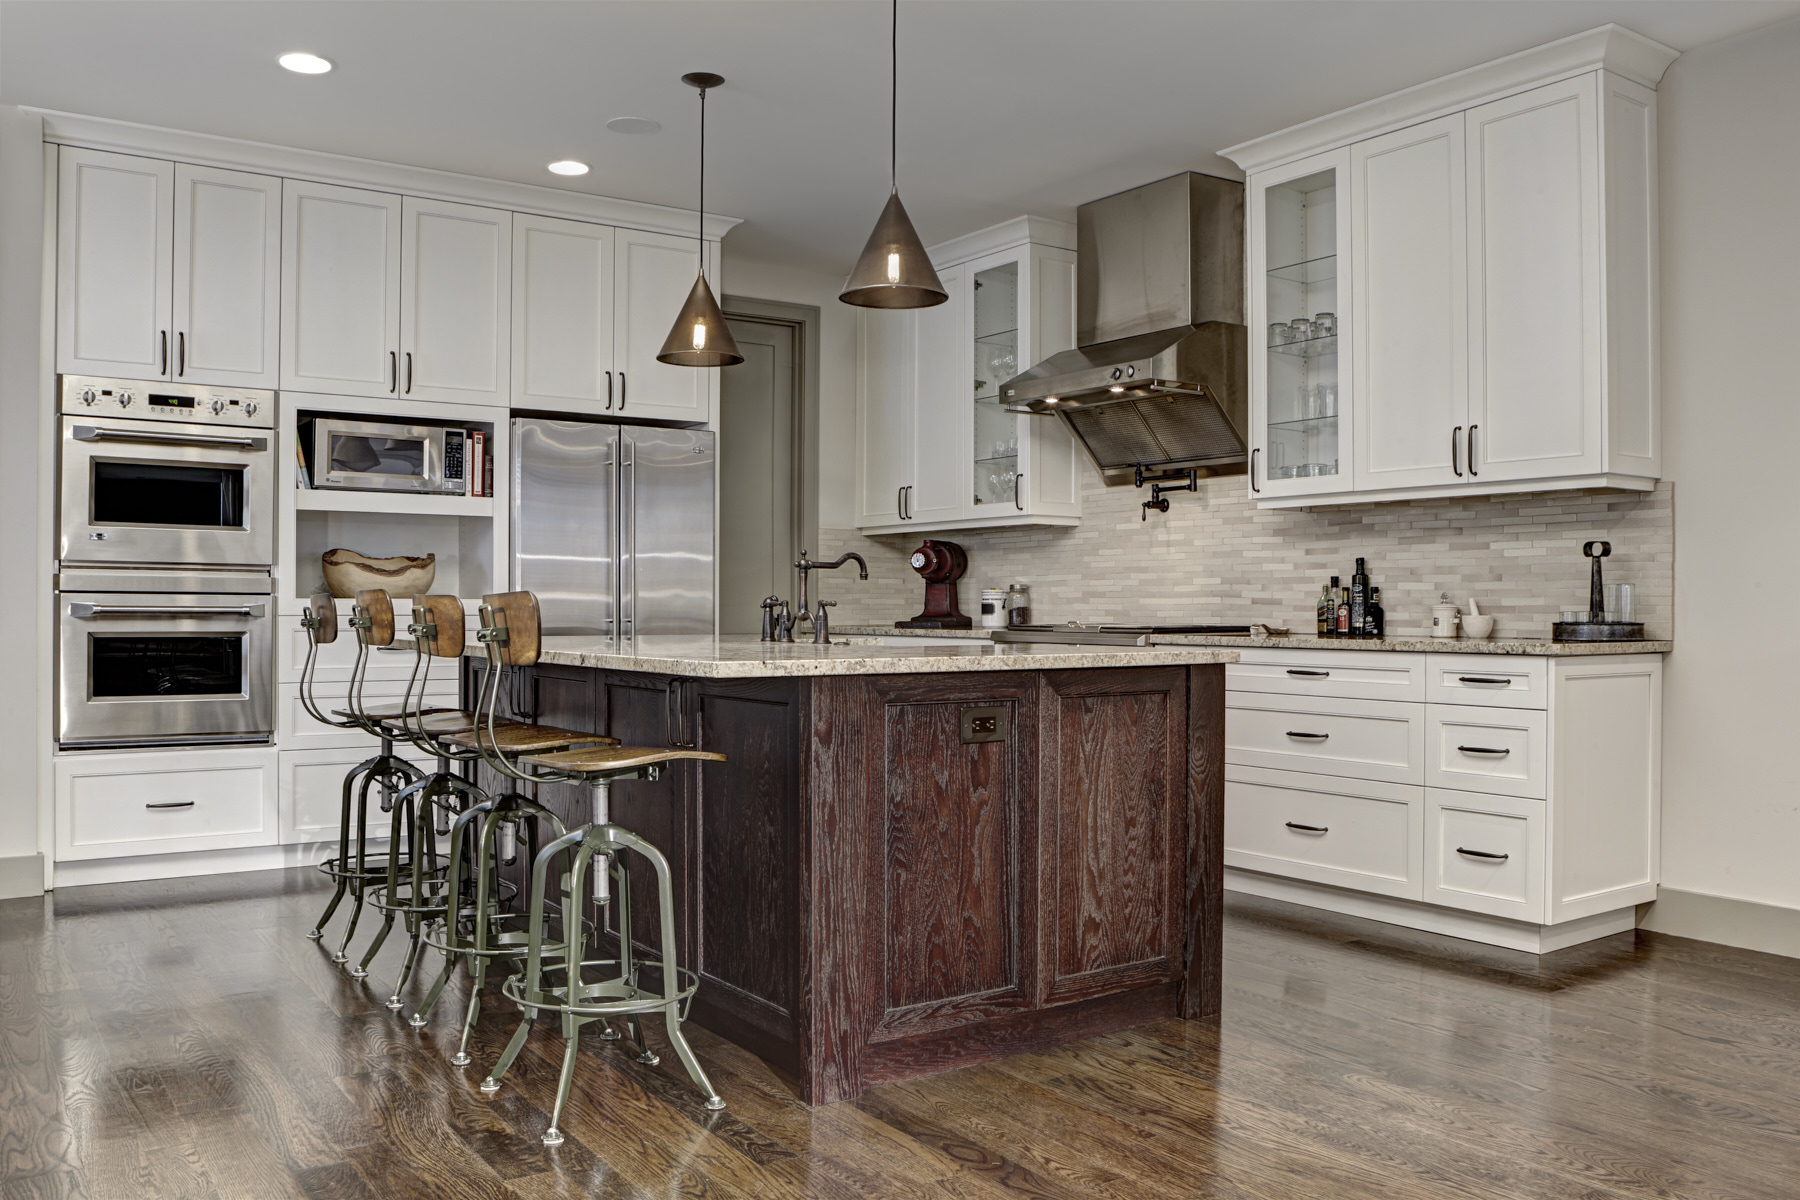 1656 Humphrey2421-Kitchen HDR.jpg